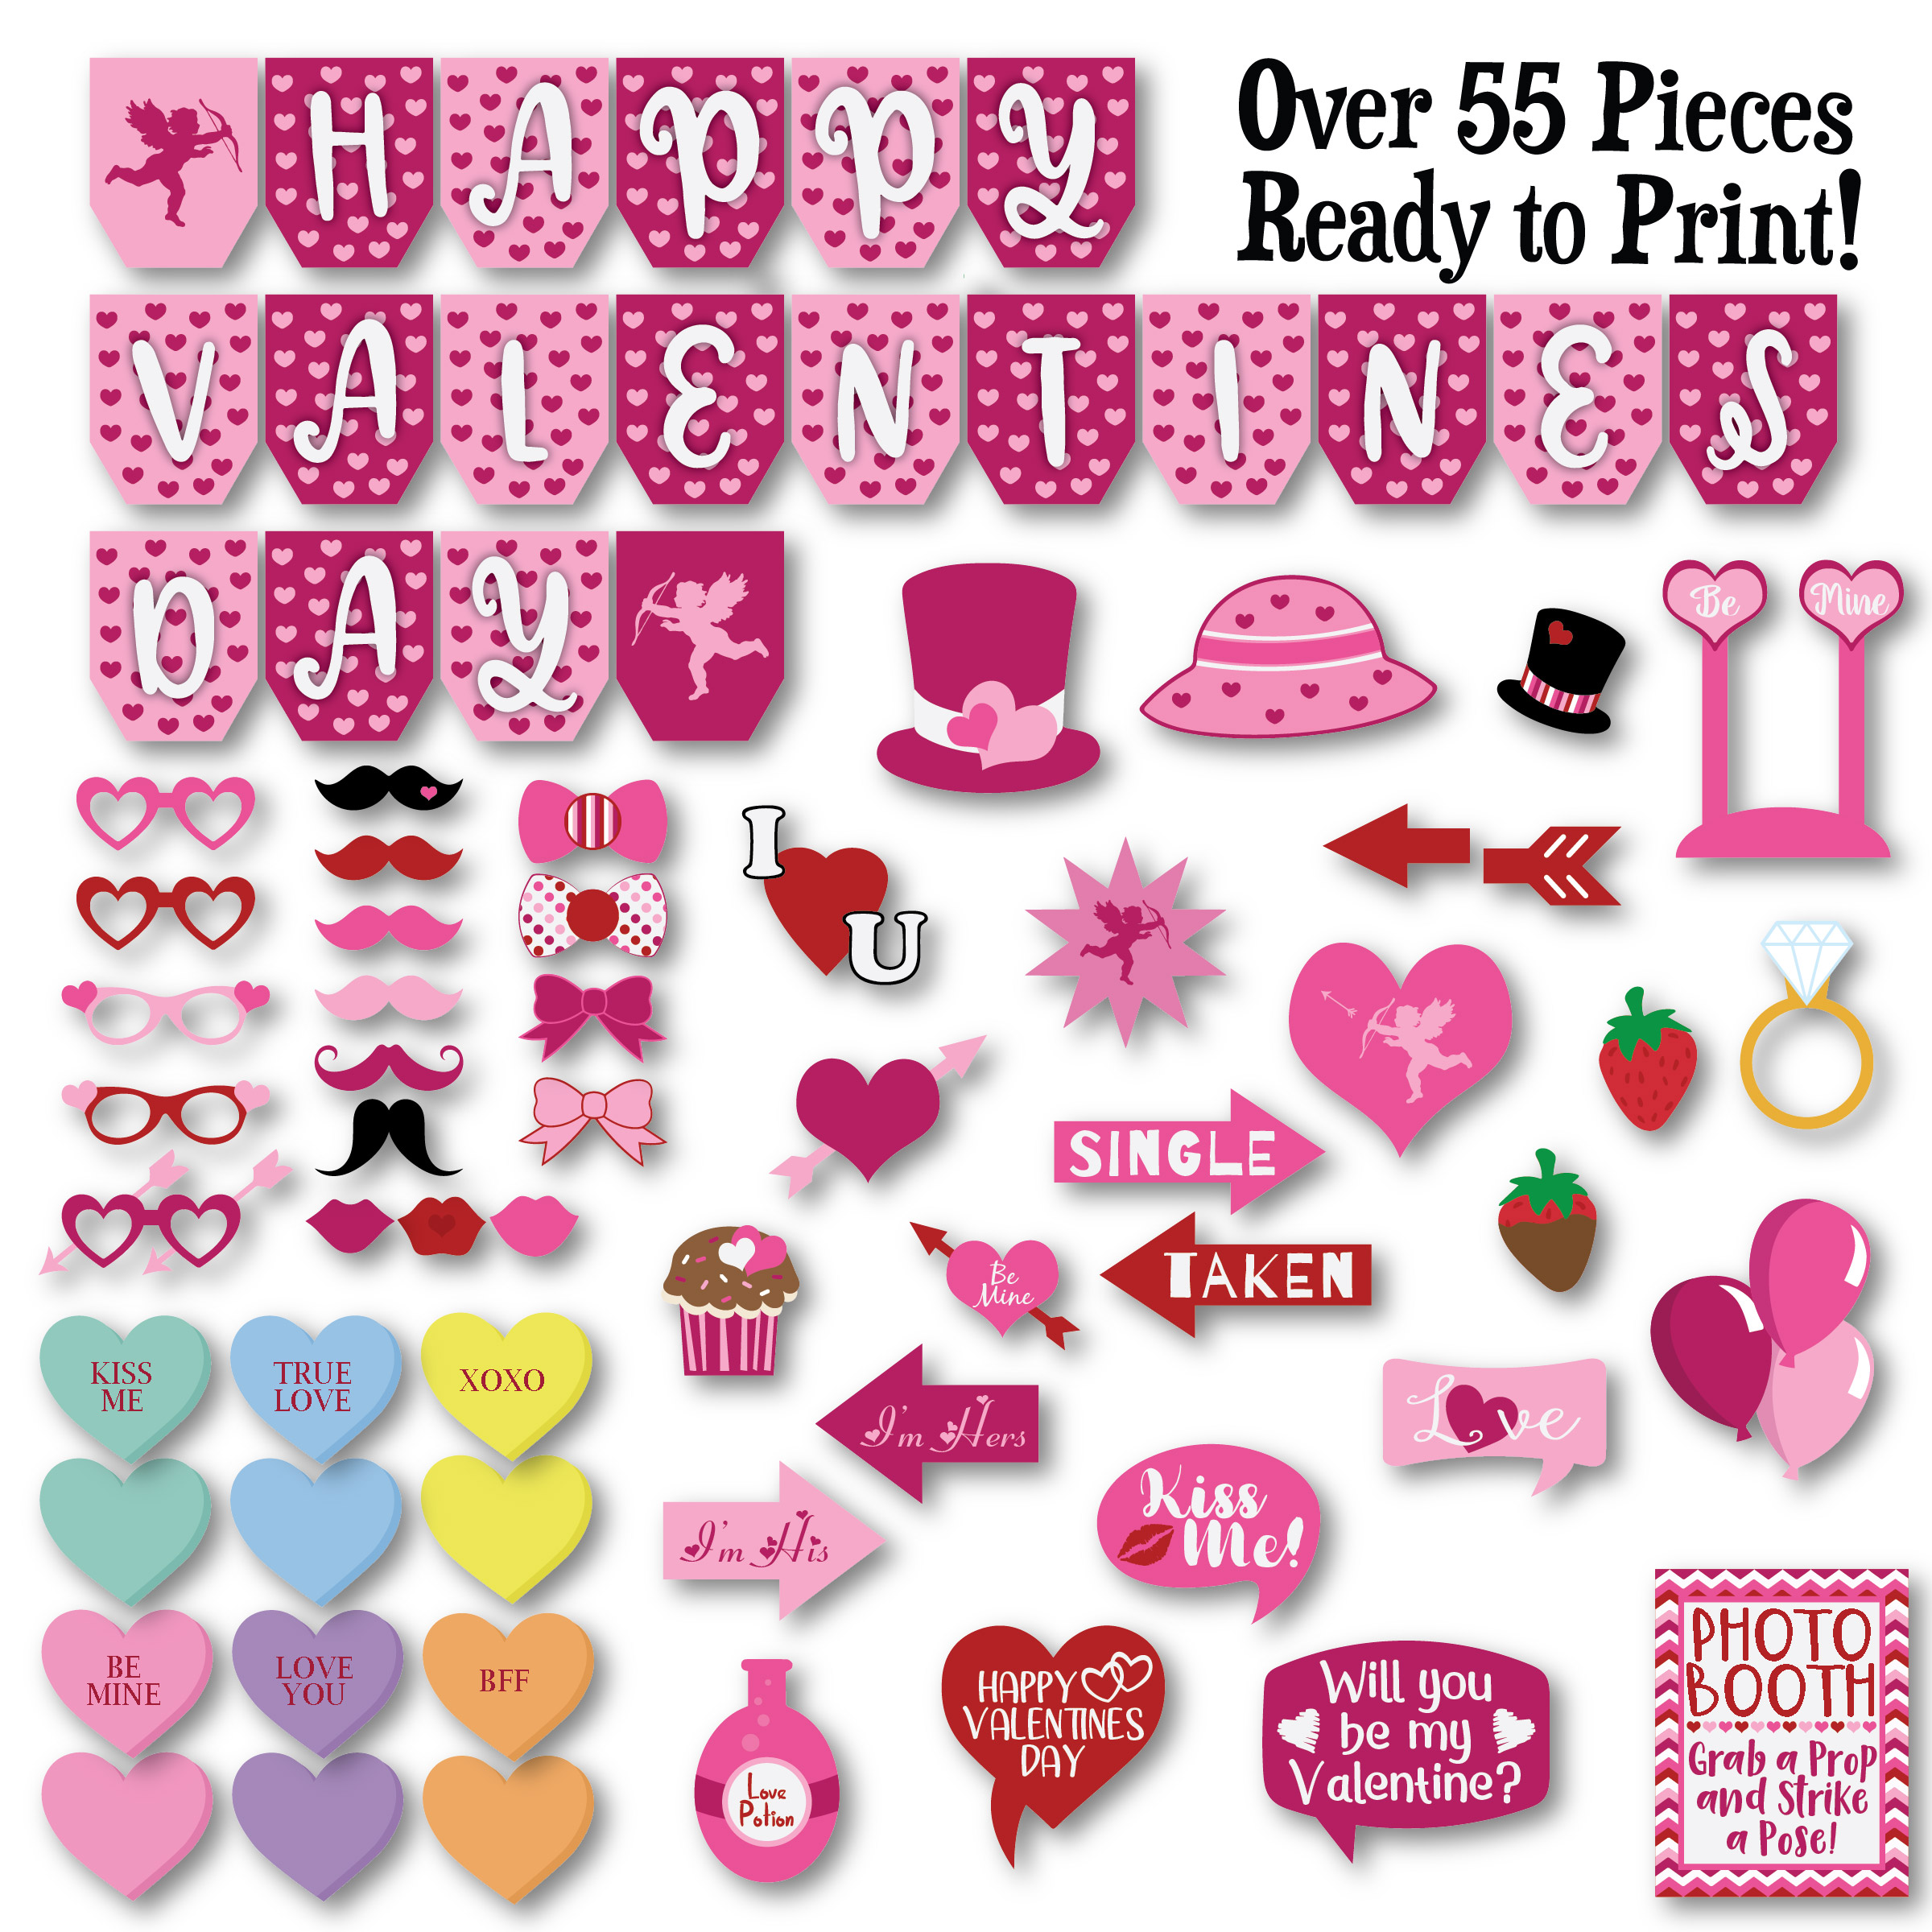 Valentines Day Photo Booth Props - SVG Cut File - DXF - EPS example image 2